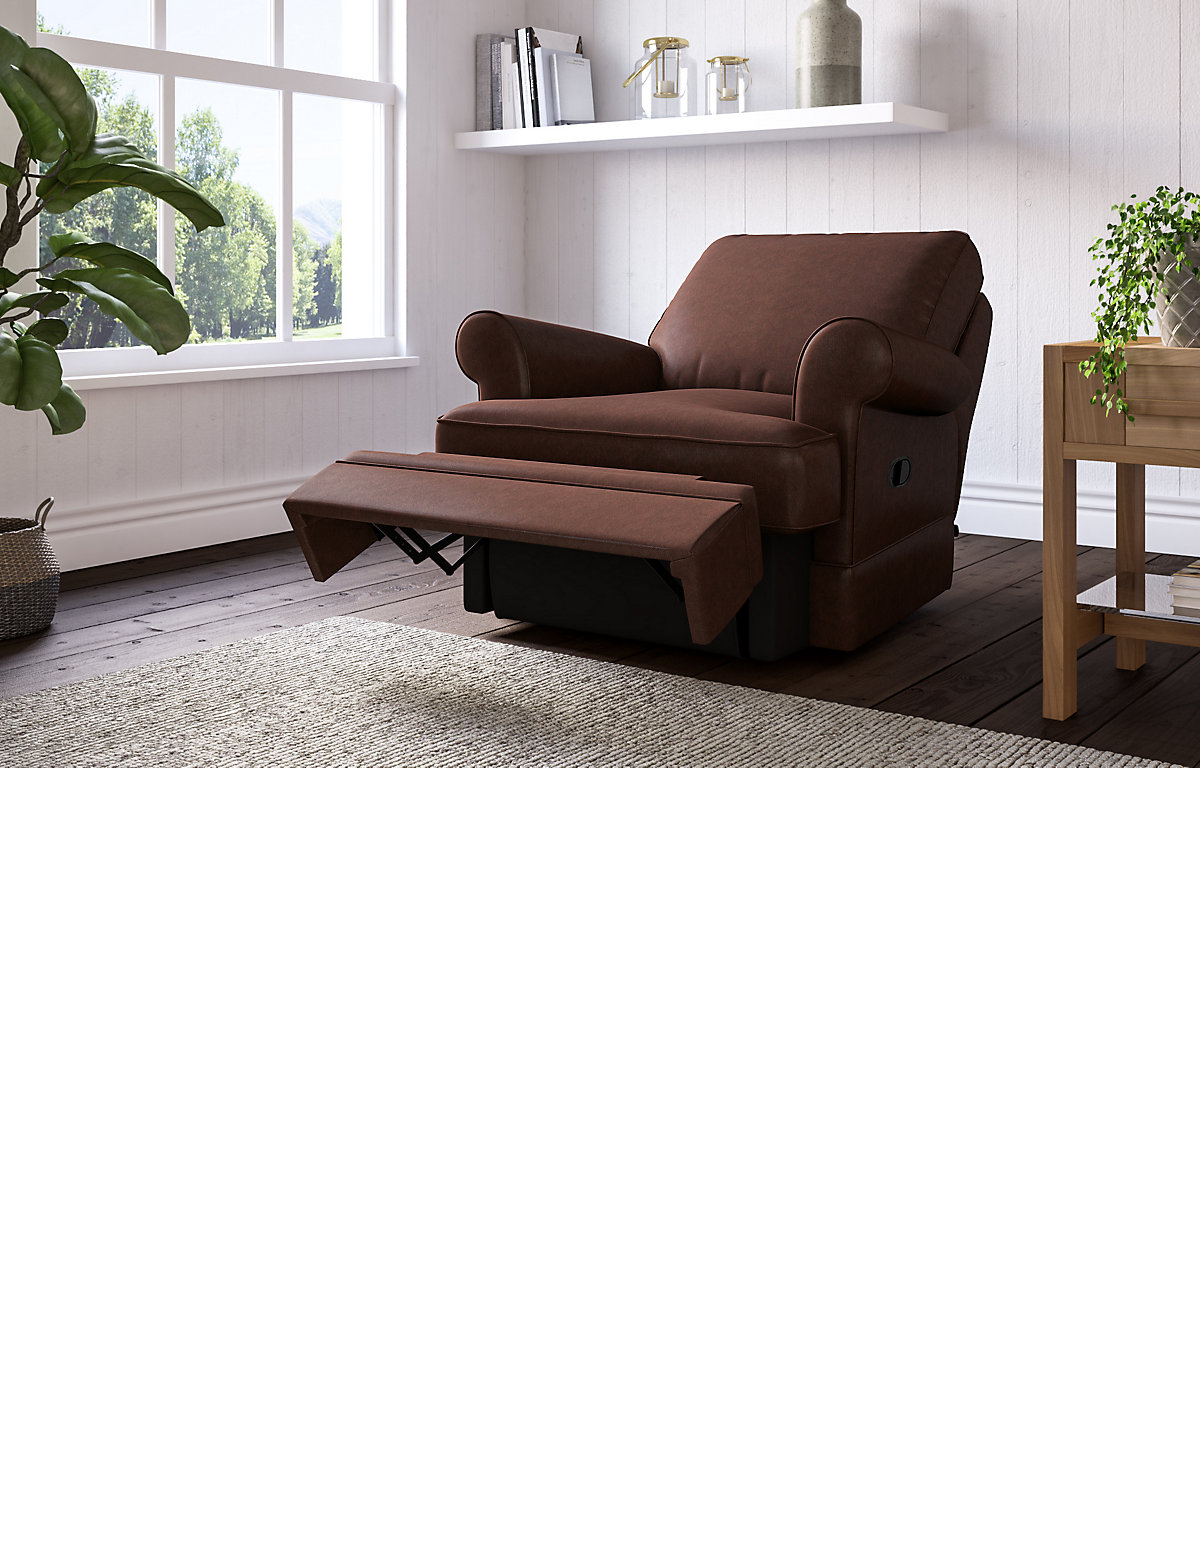 Berkeley Chair Recliner (Manual) at Marks and Spencer Online